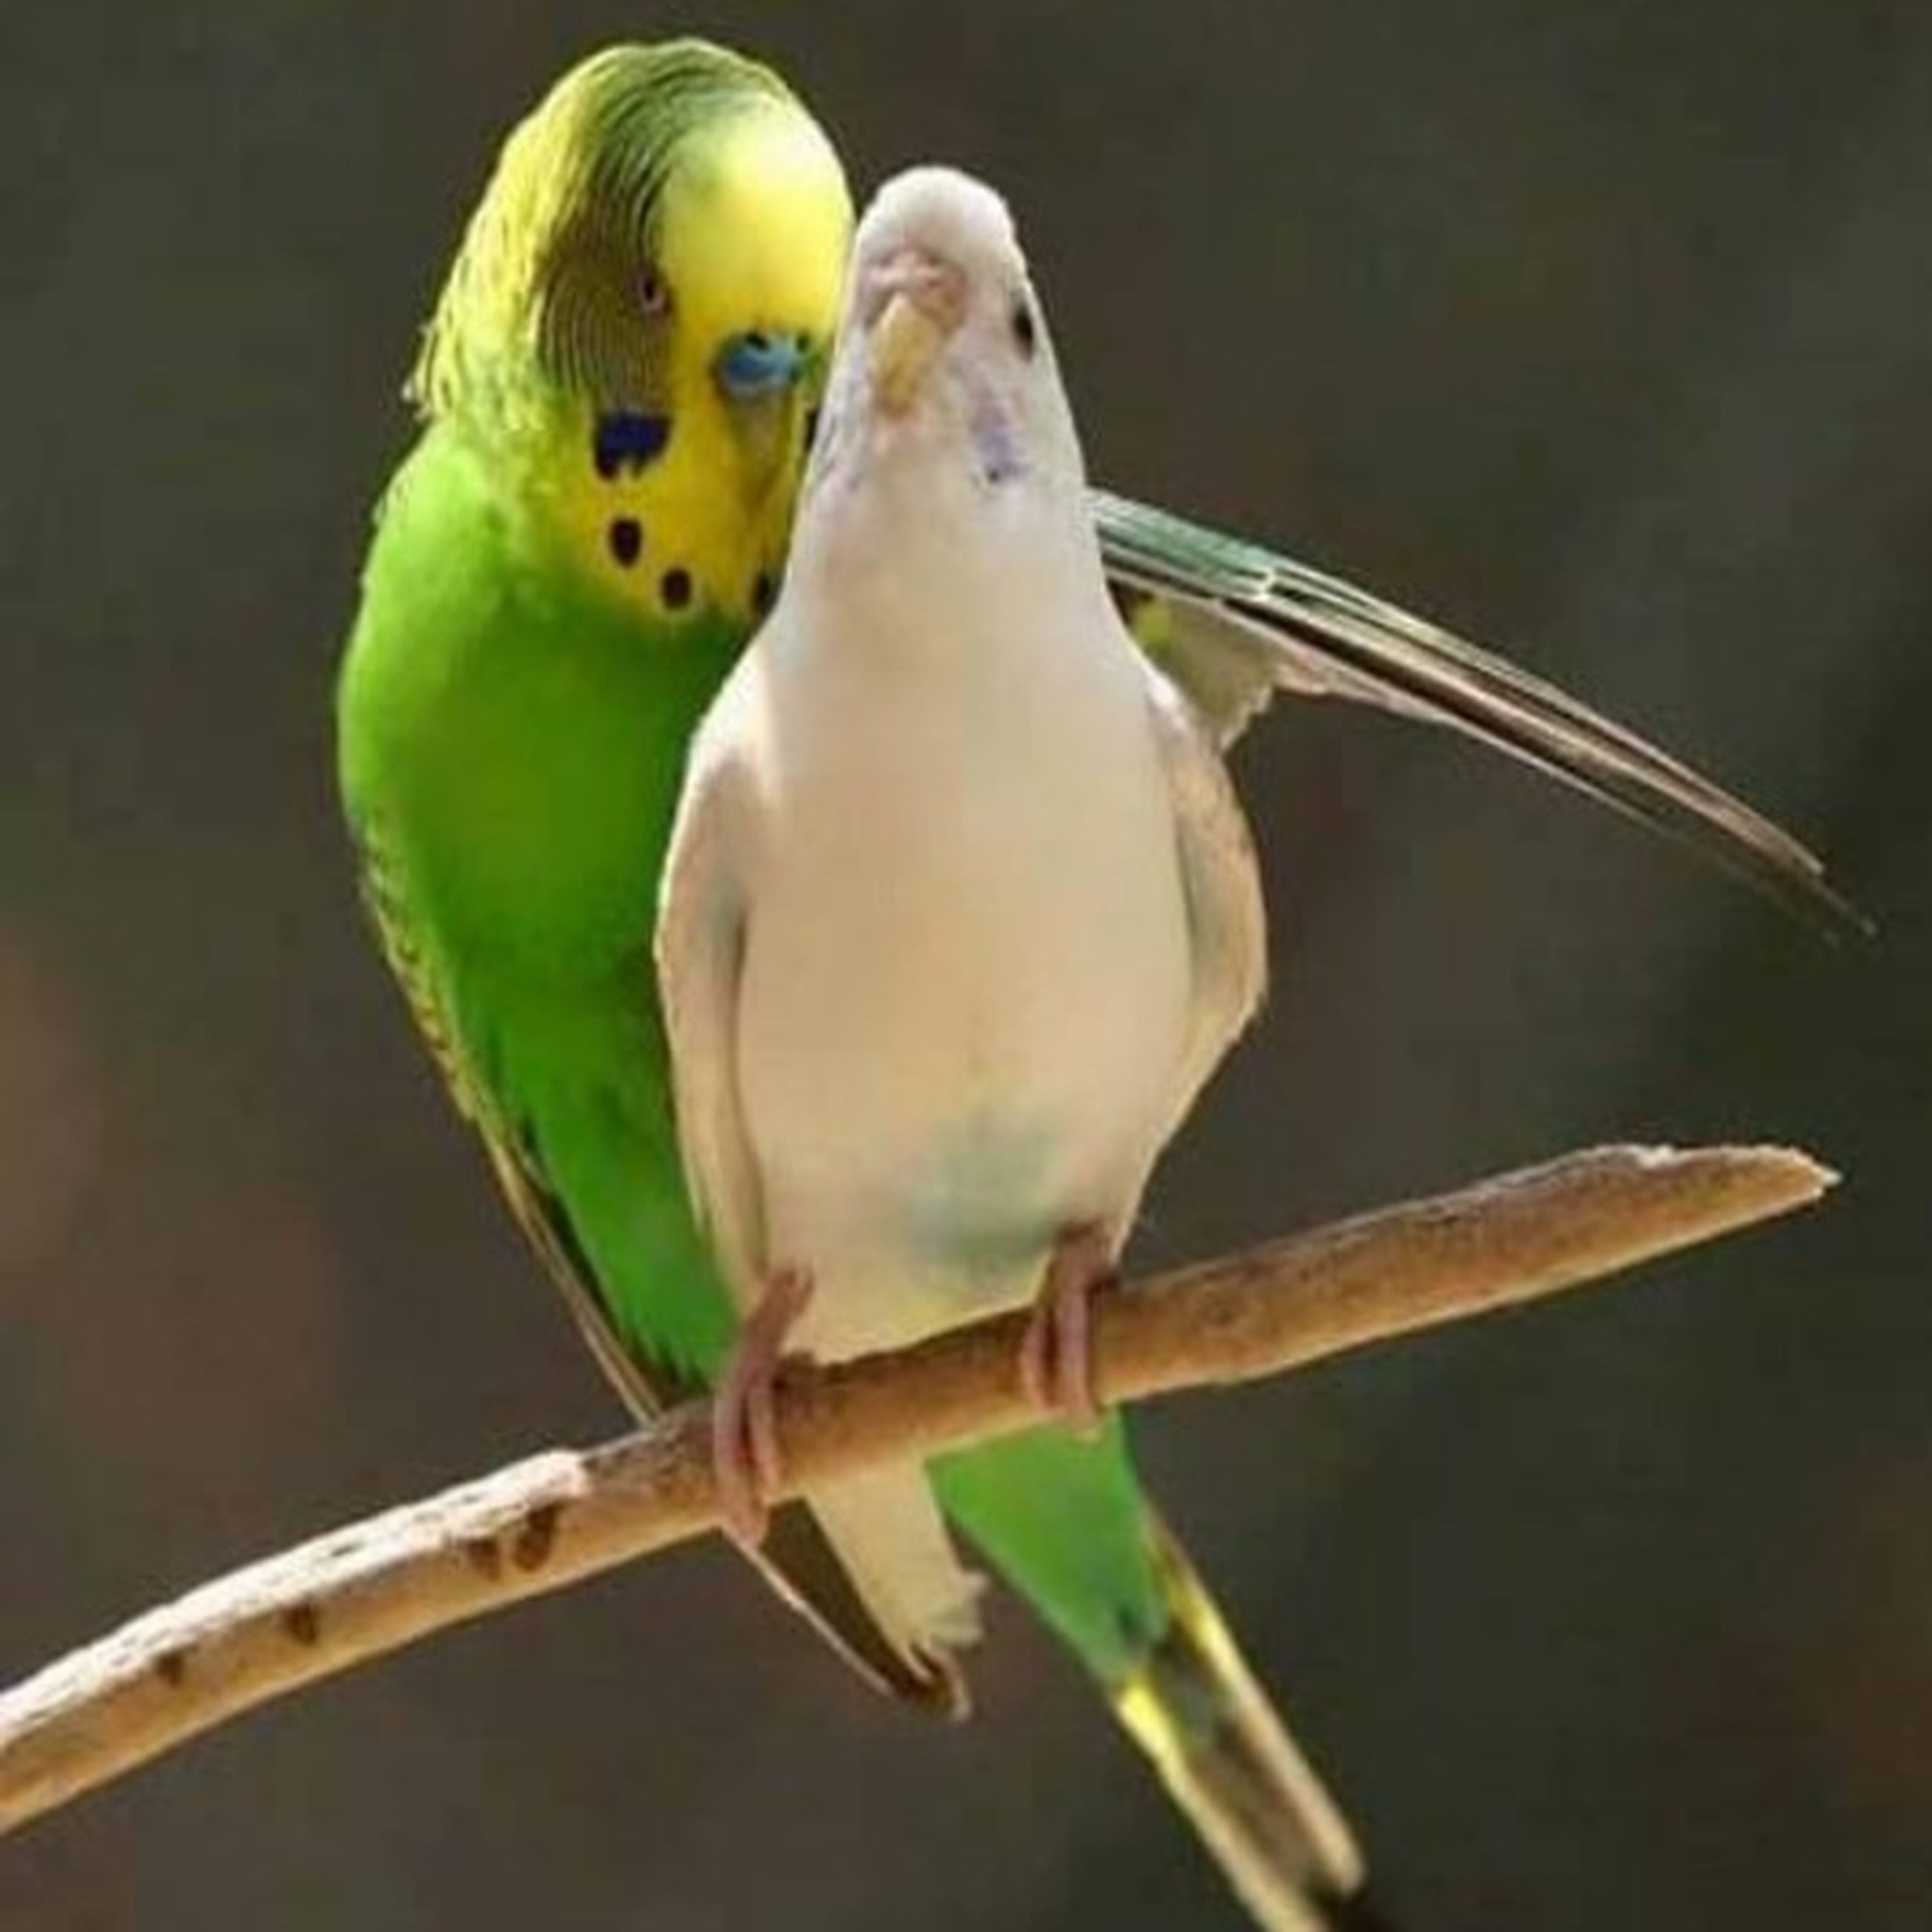 animal themes, one animal, bird, animals in the wild, wildlife, perching, close-up, beak, focus on foreground, side view, nature, full length, parrot, animal head, zoology, day, outdoors, no people, wood - material, branch